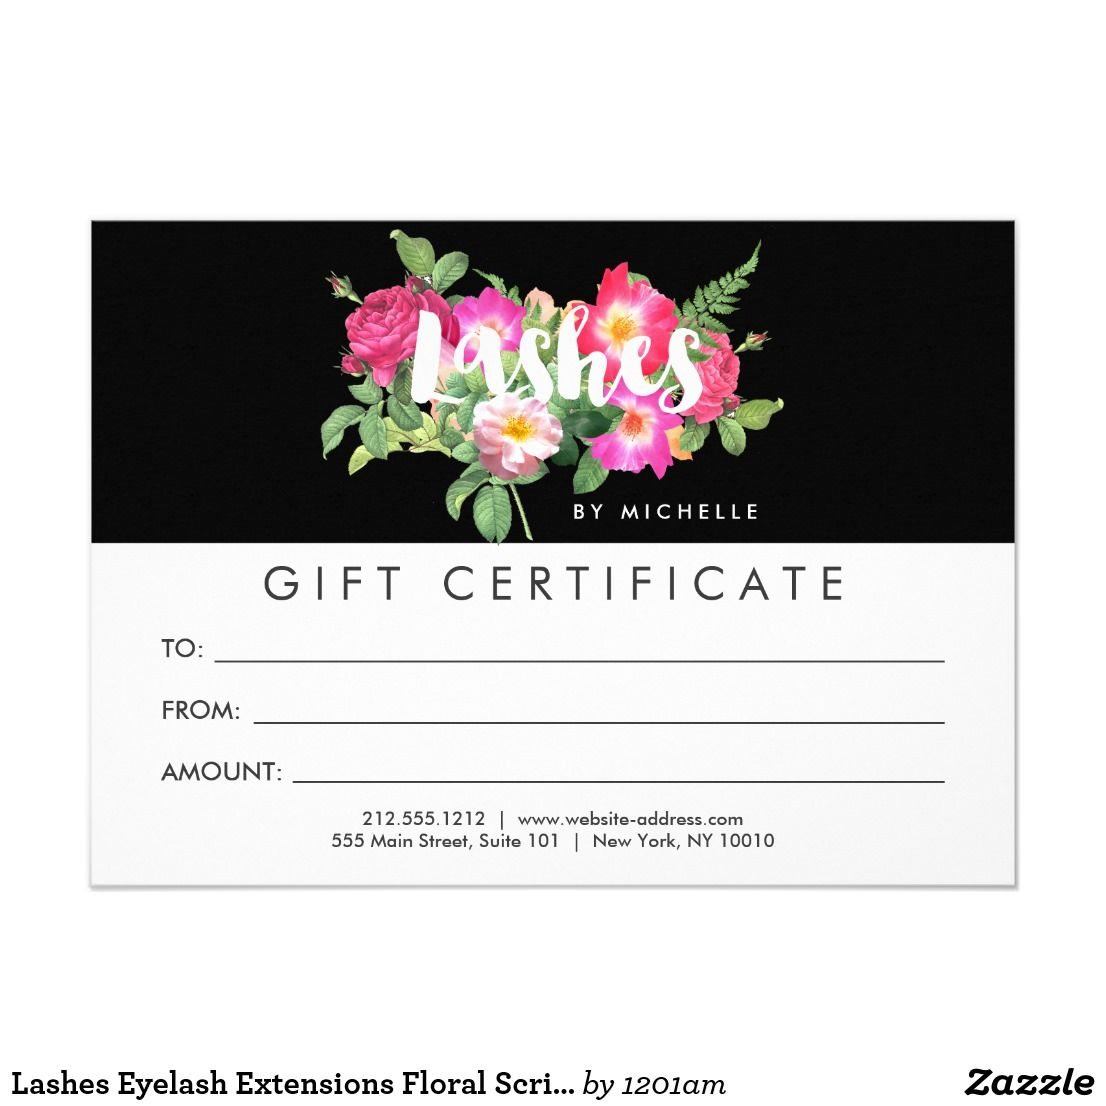 Beauty Fls Nail Salon Black Gift Certificate Card Created By Personalize It With Photos Text Or Purchase As Is